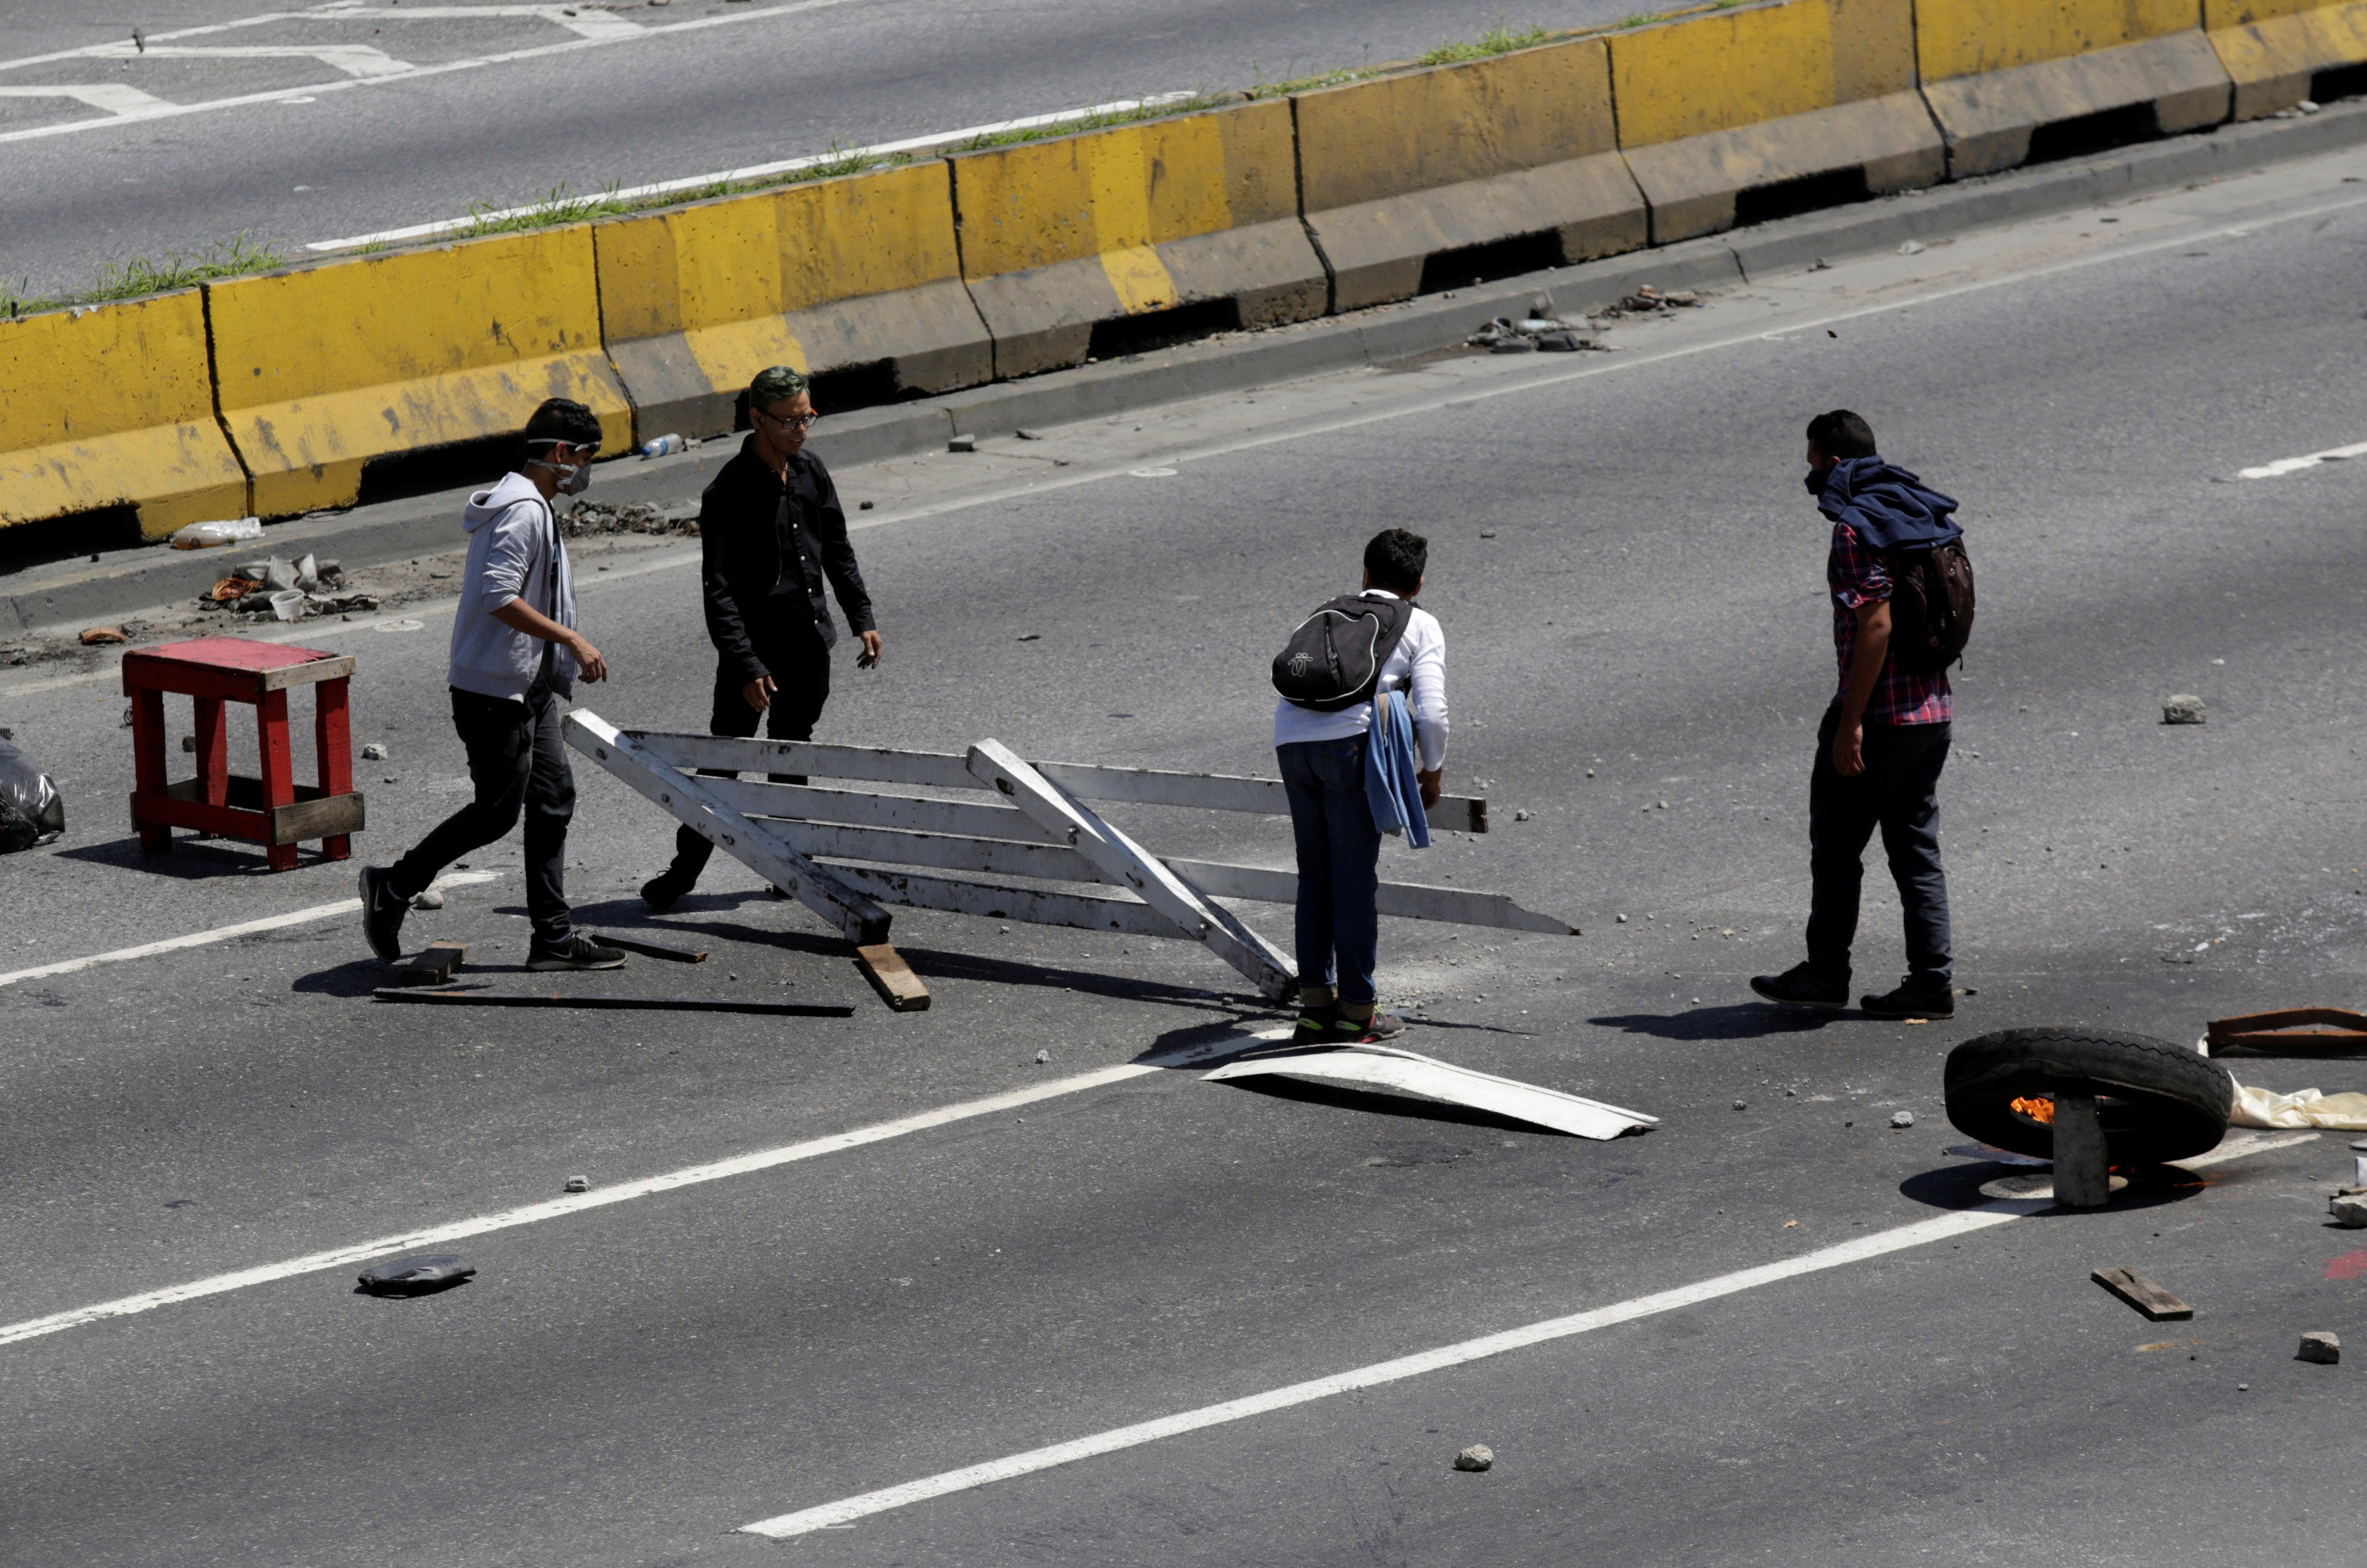 Opposition supporters build a barricade on a highway while rallying against Venezuela's President Nicolas Maduro's government, in Caracas, Venezuela July 4, 2017. REUTERS/Marco Bello